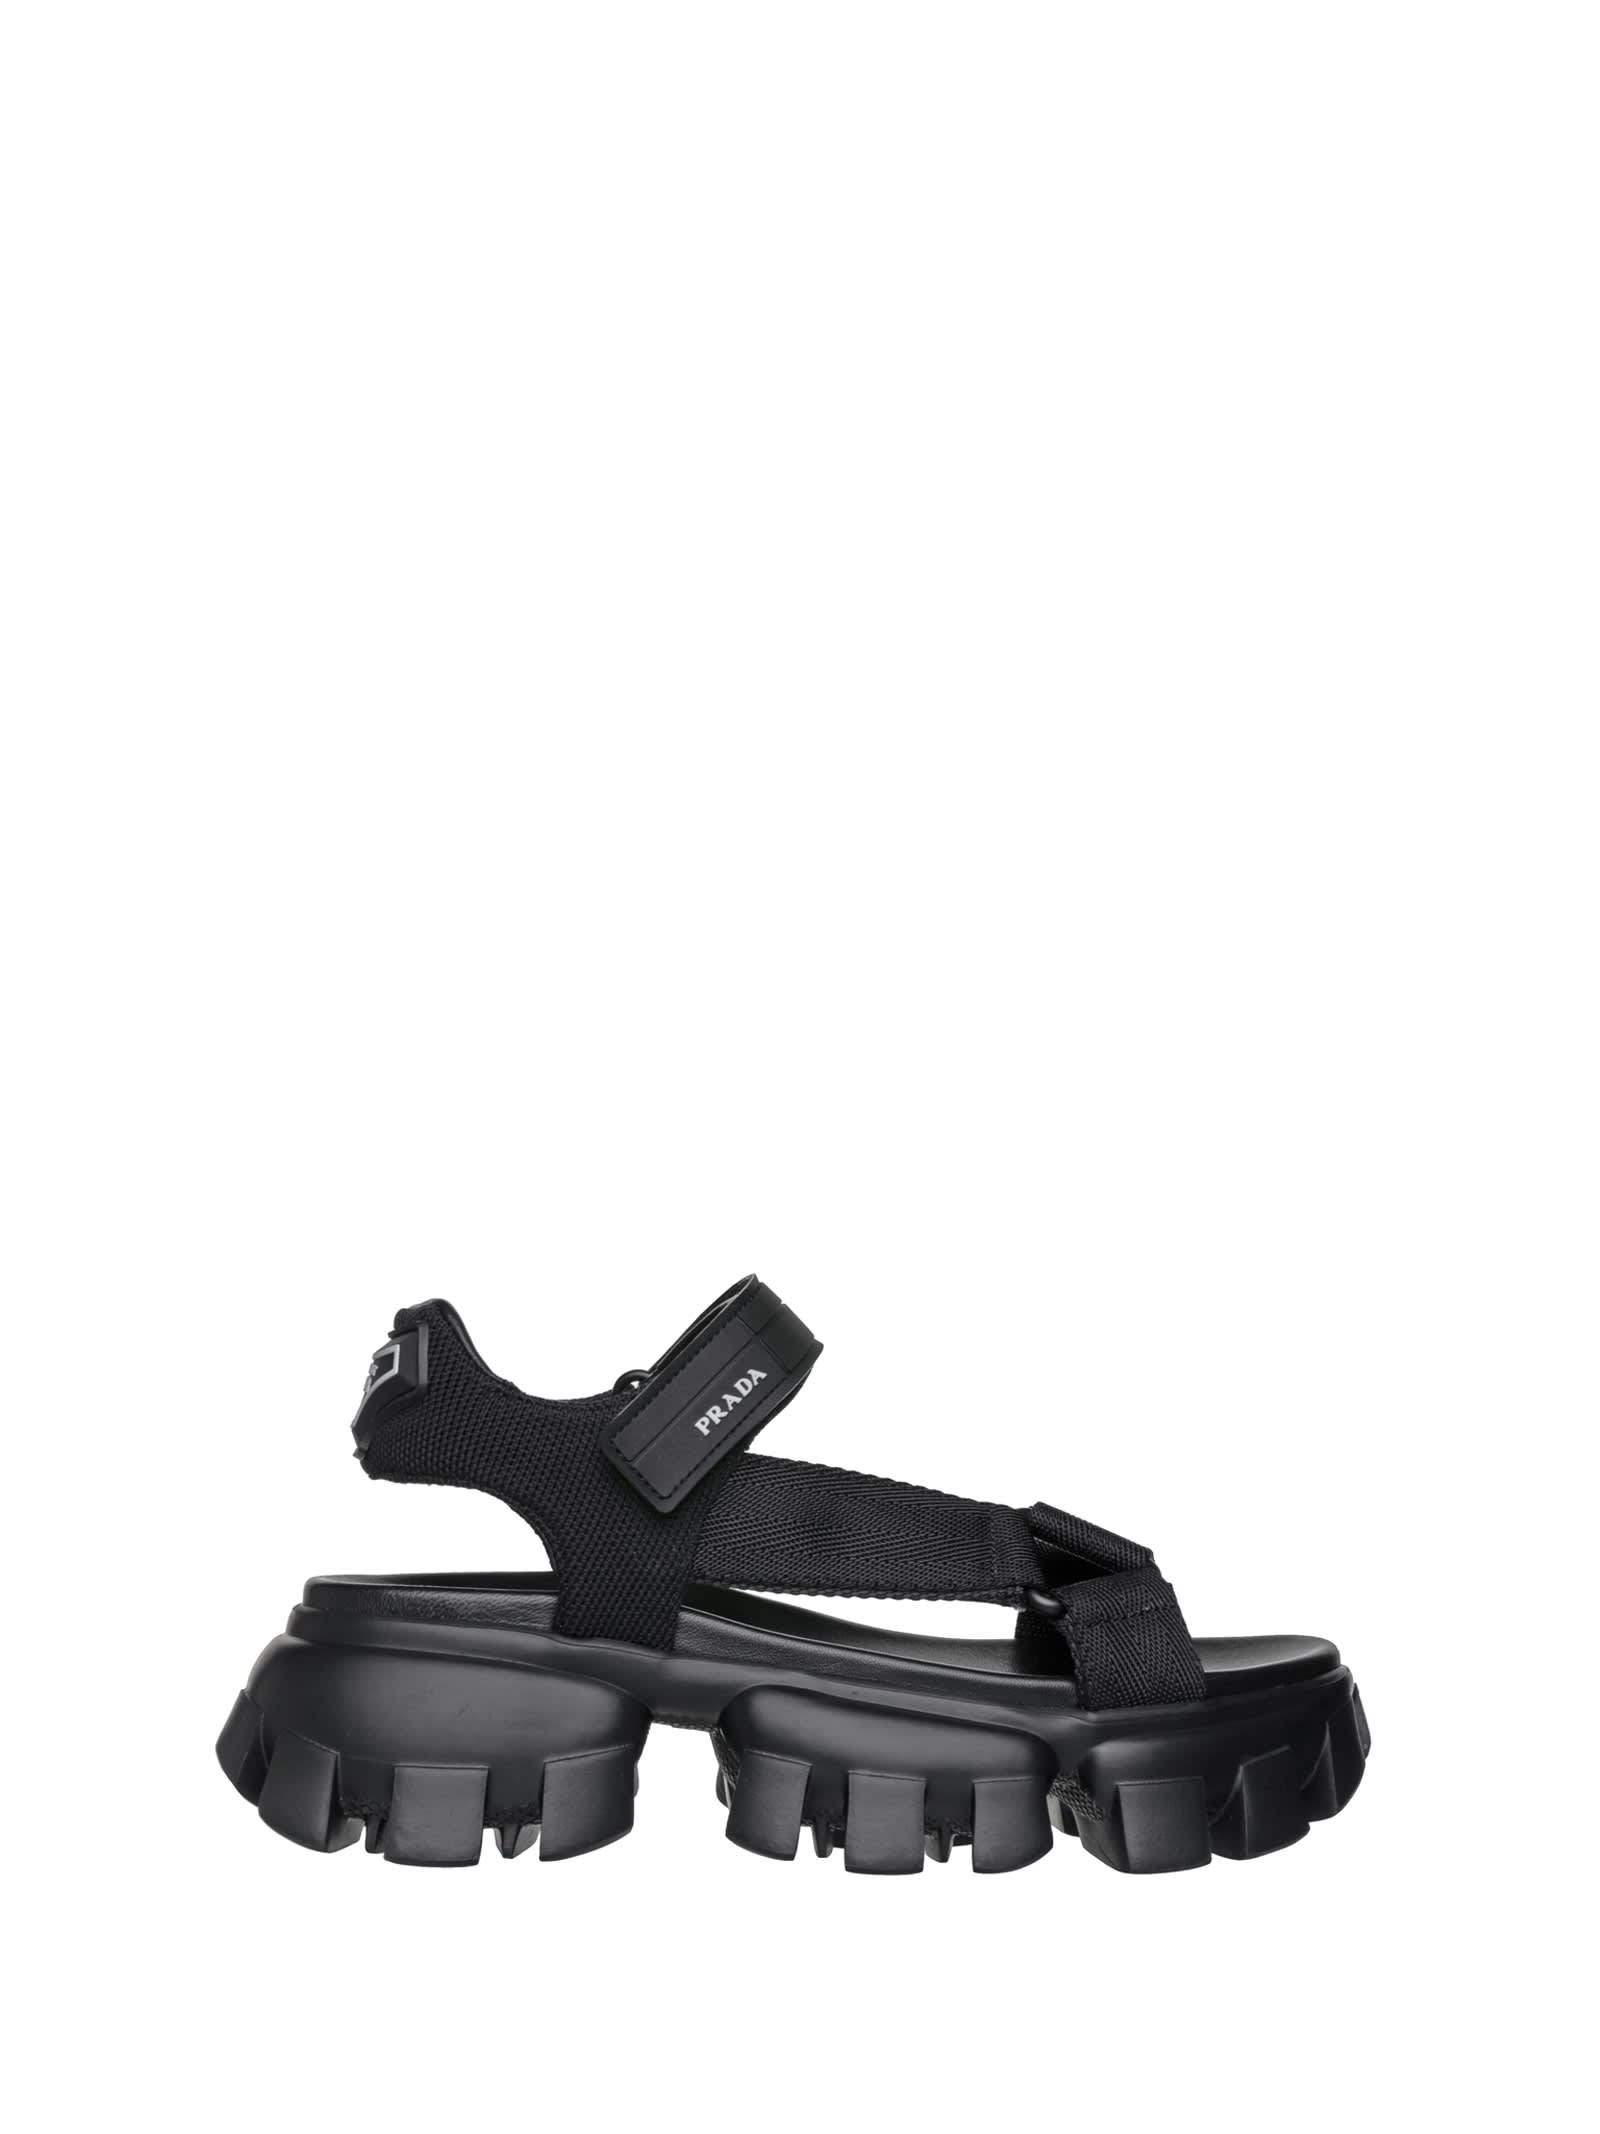 Prada Platforms THUNDER PLATFORM SANDALS